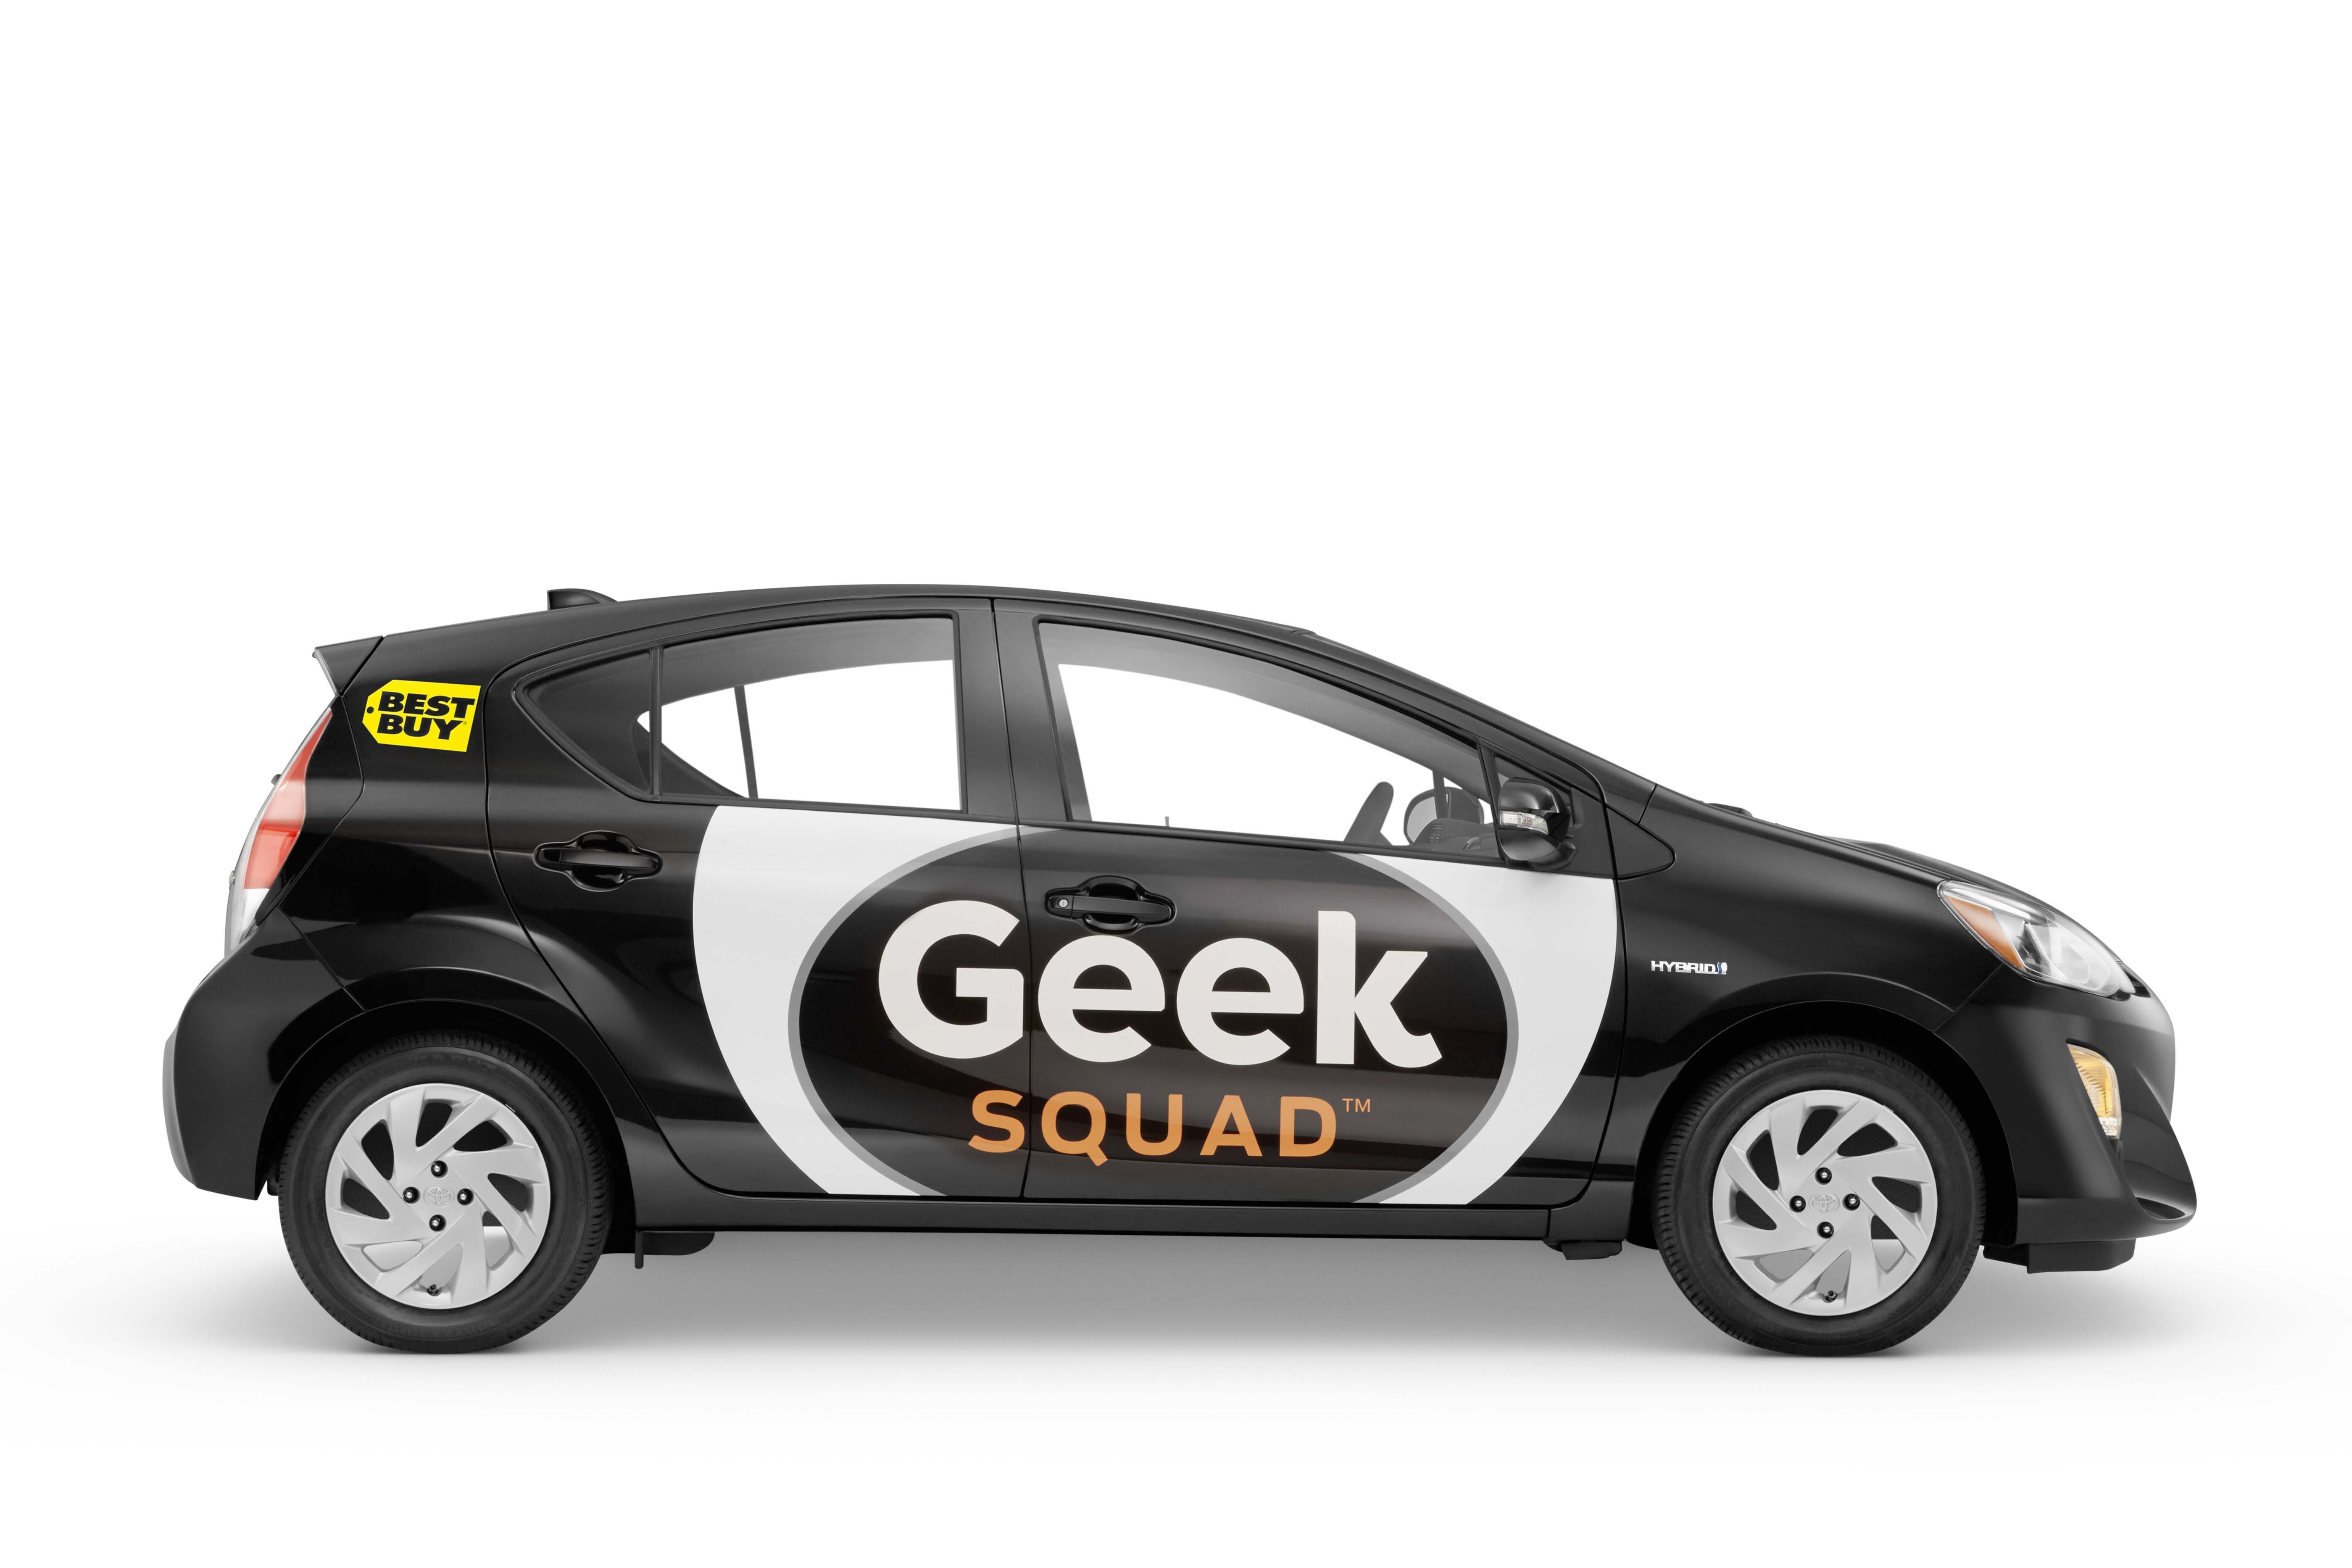 The all-new geekmobile